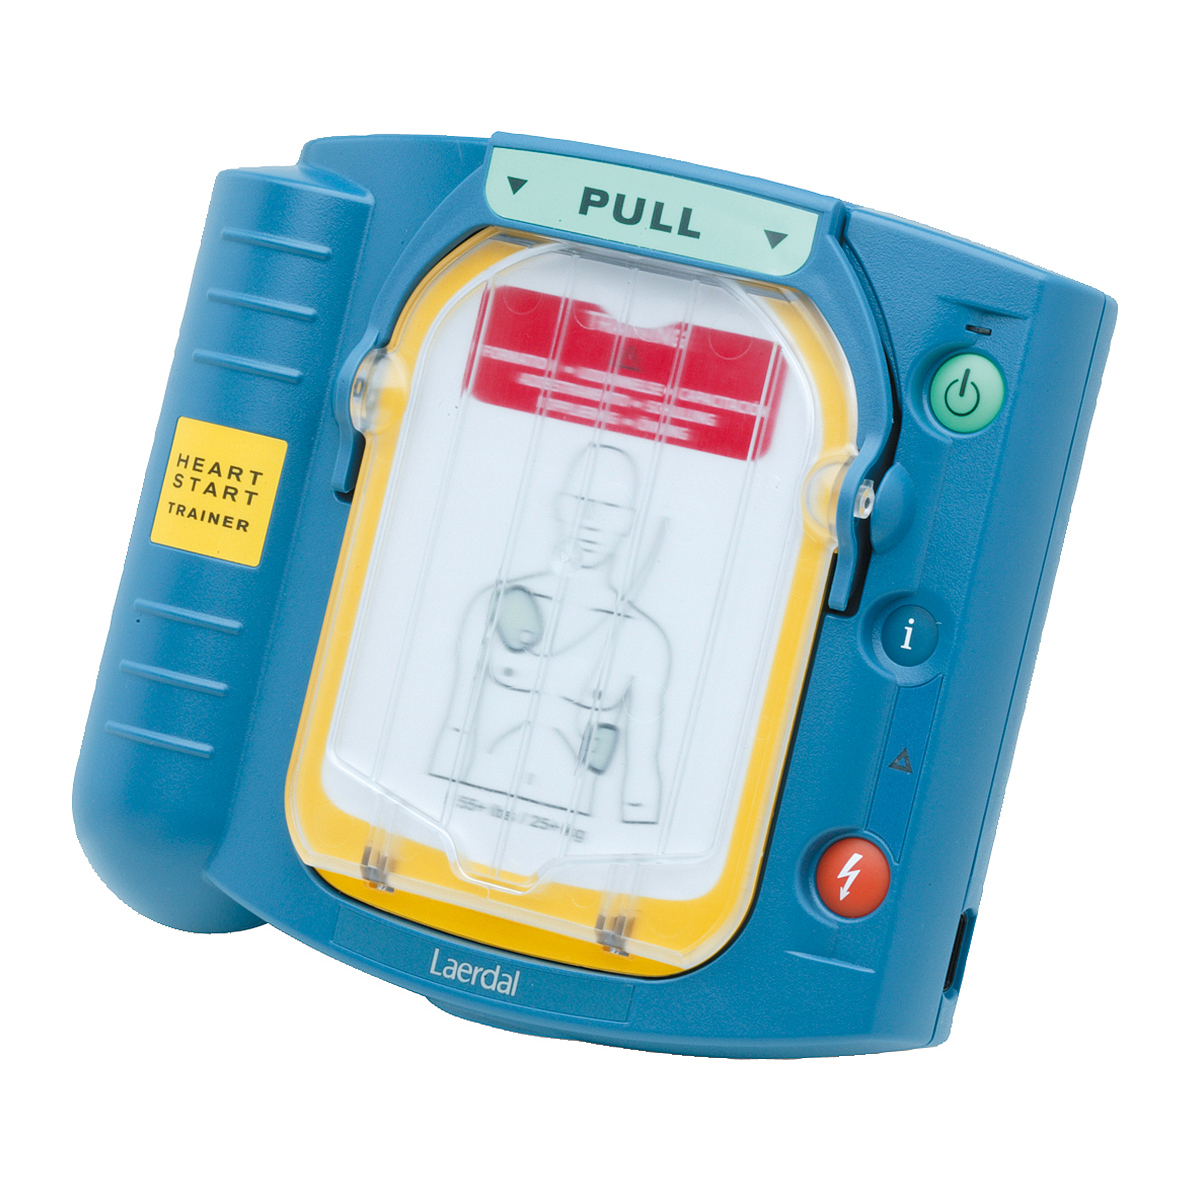 Philips Heartstart® HS1 Defibrillator Trainer